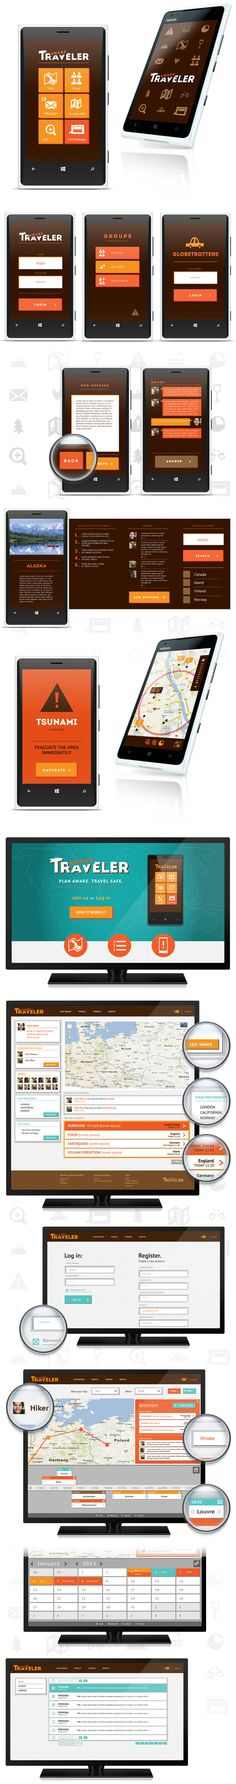 mobile #app #flat #UI #design